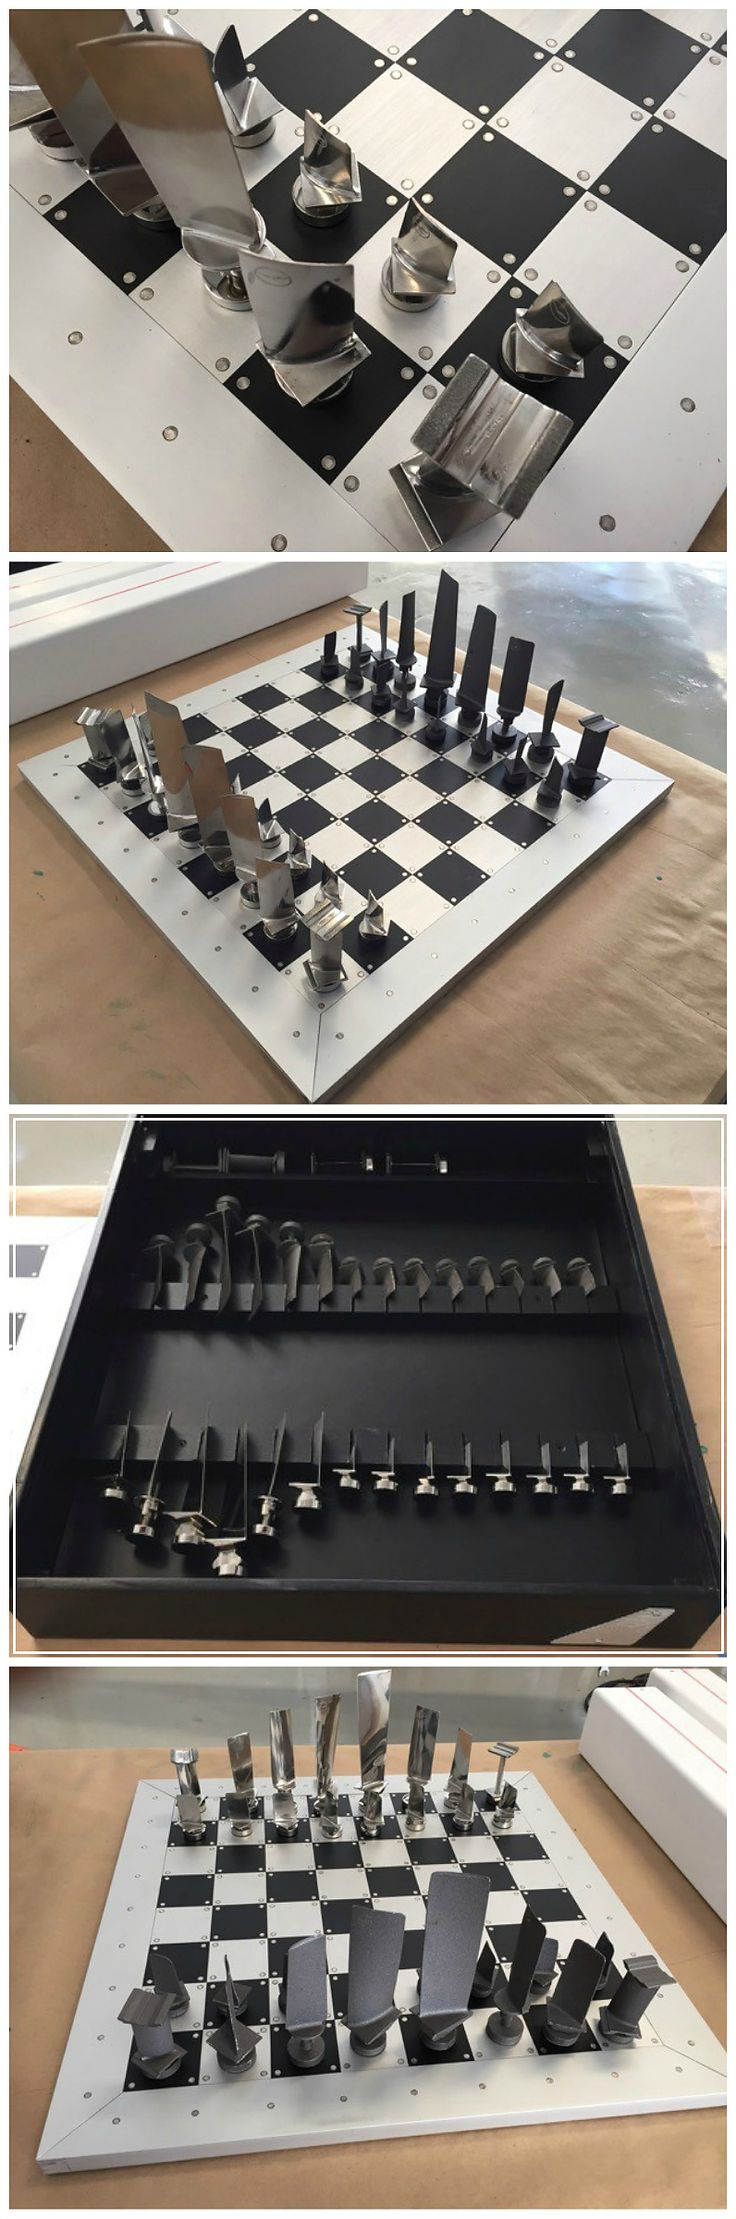 enjoyable ideas cheap chess sets. Find your perfect chess set  pieces boards MORE at Chess House 58 best Beautiful Sets Pieces Boards Gift Ideas Unique